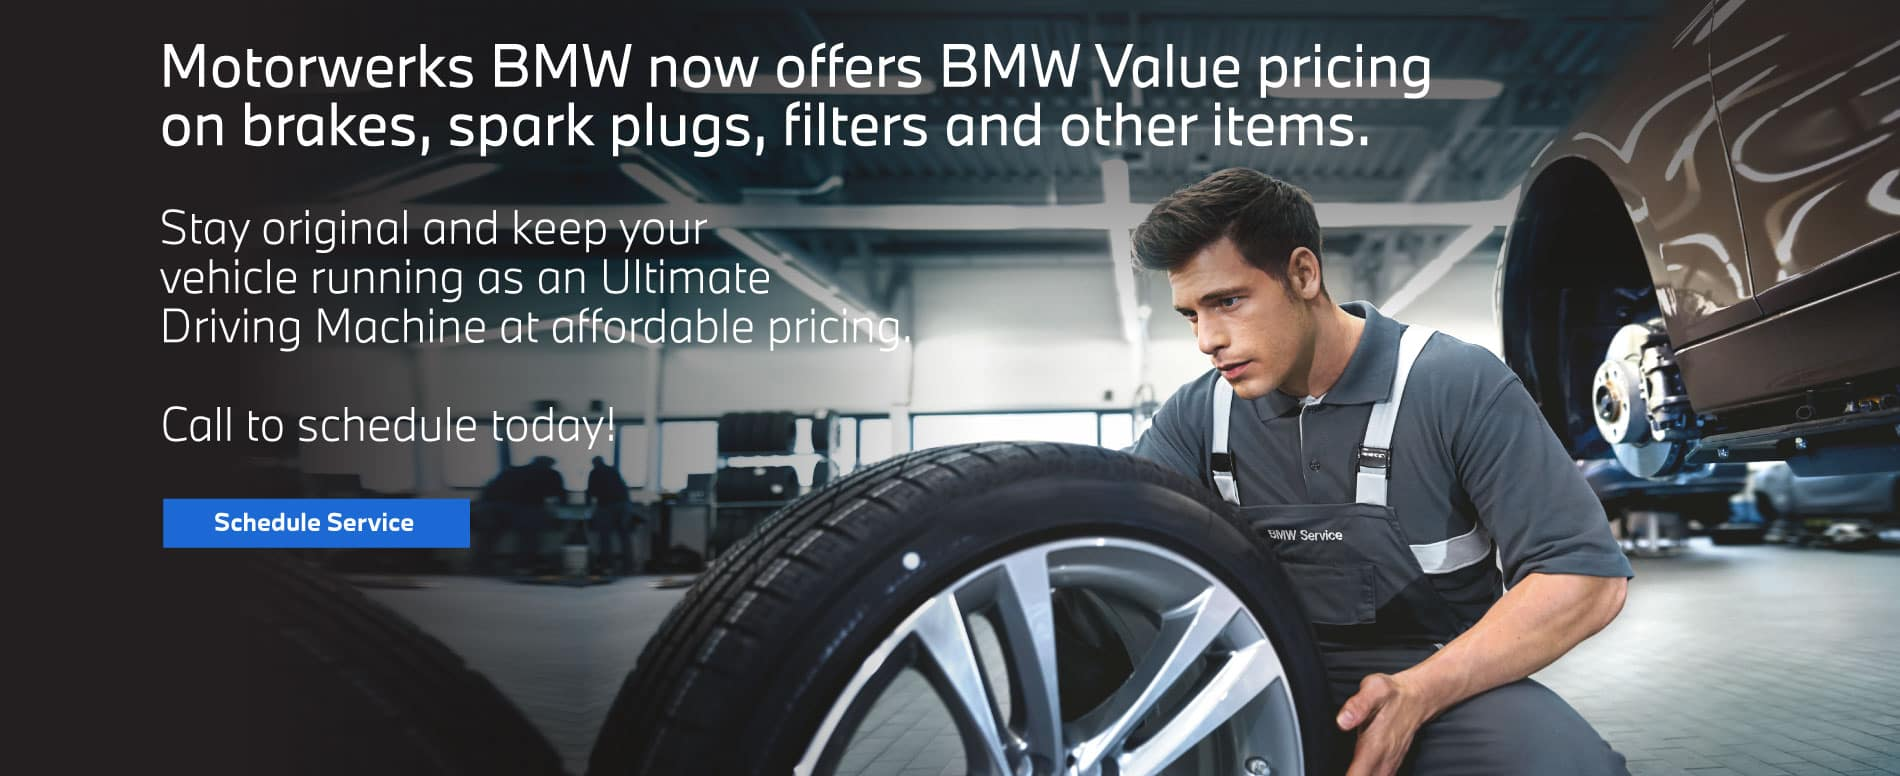 BMW Value pricing on brakes, spark plugs, filters and other items